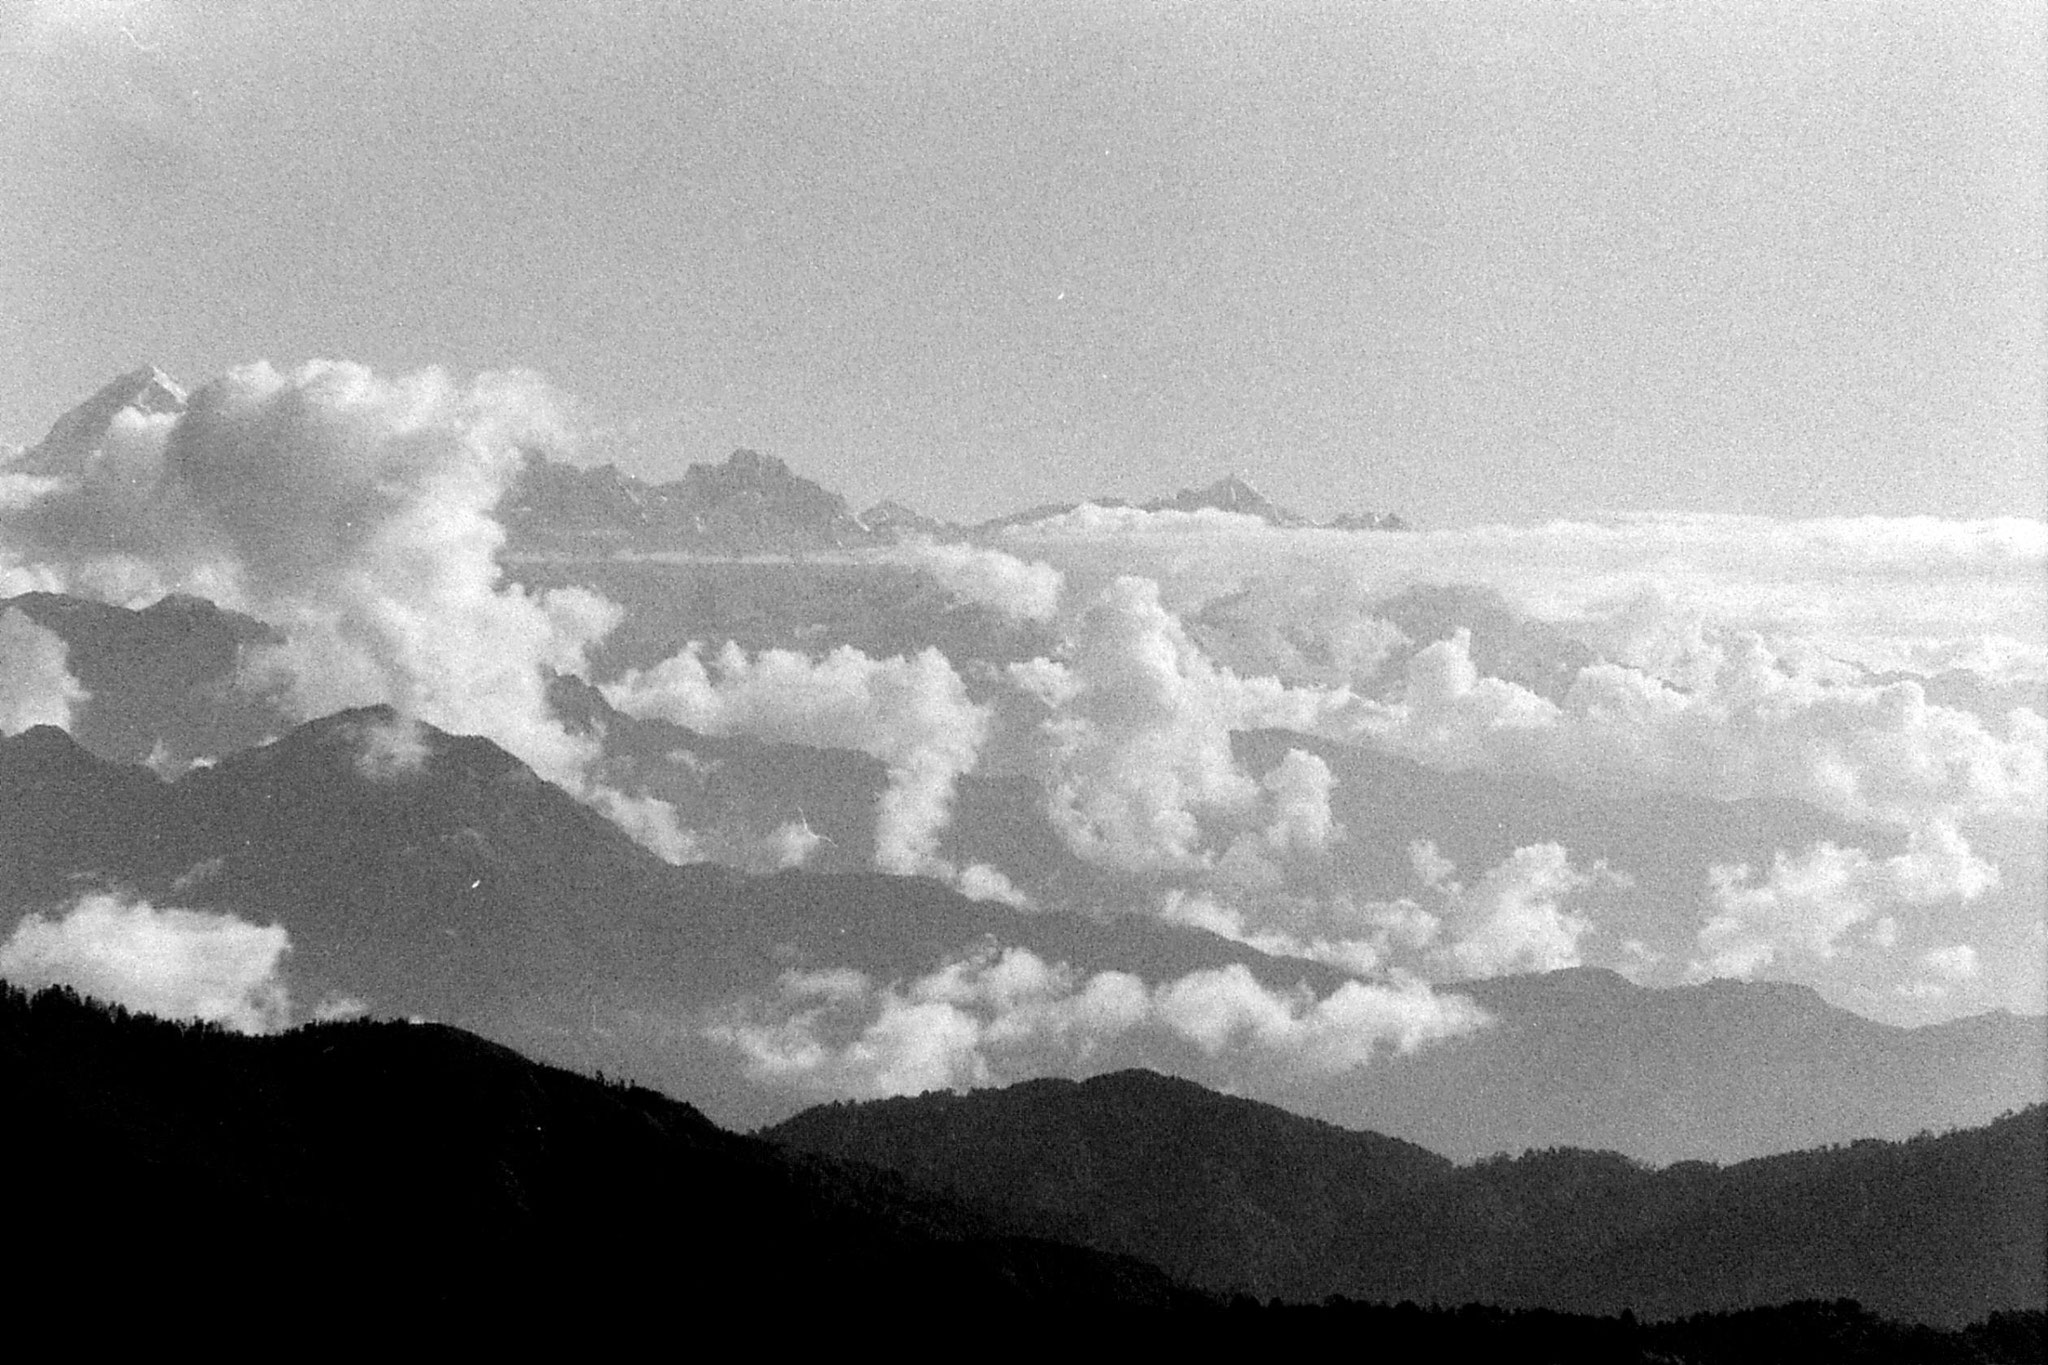 8/5/1990: 31: from Sabarkum, clouds in ranges just to E of Kanchenjunga